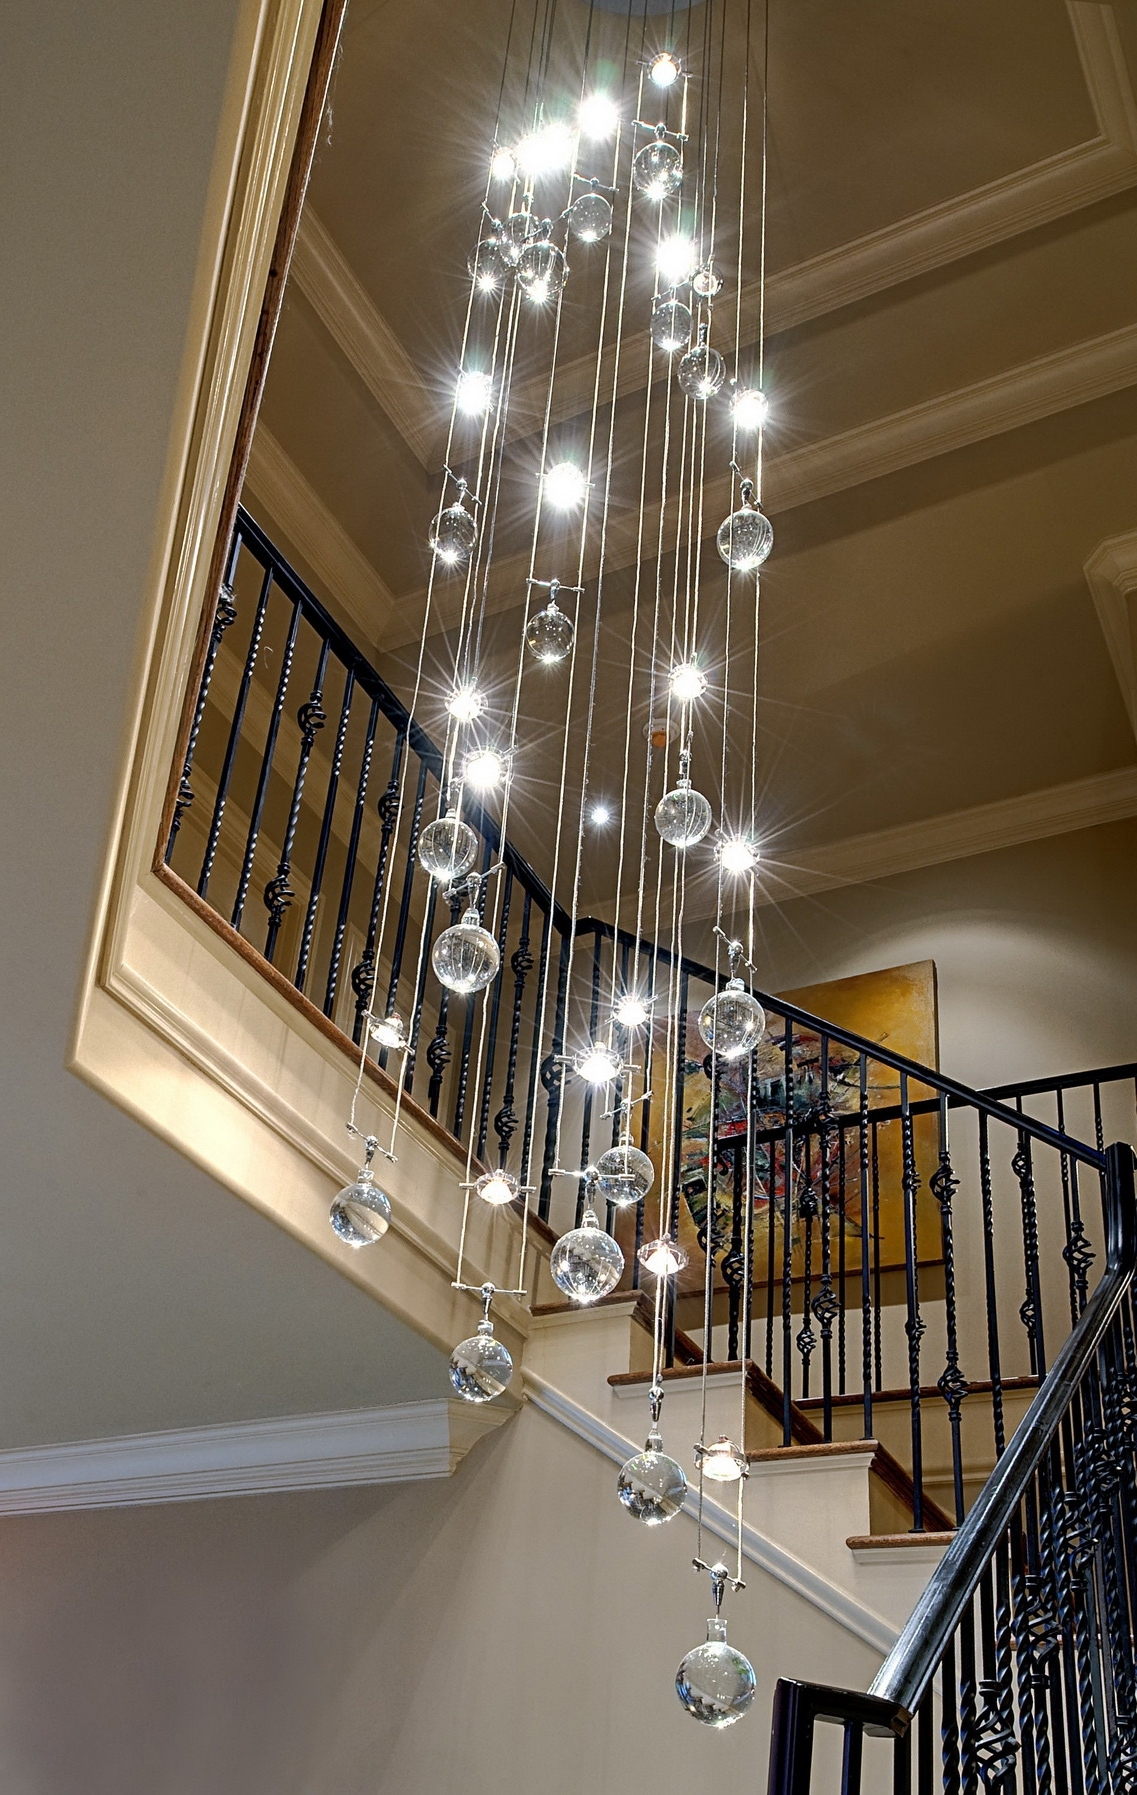 Famous Modern Chandeliers Throughout Interior: Modern Chandeliers For High Ceiling With Sparkly Crystals (View 10 of 15)